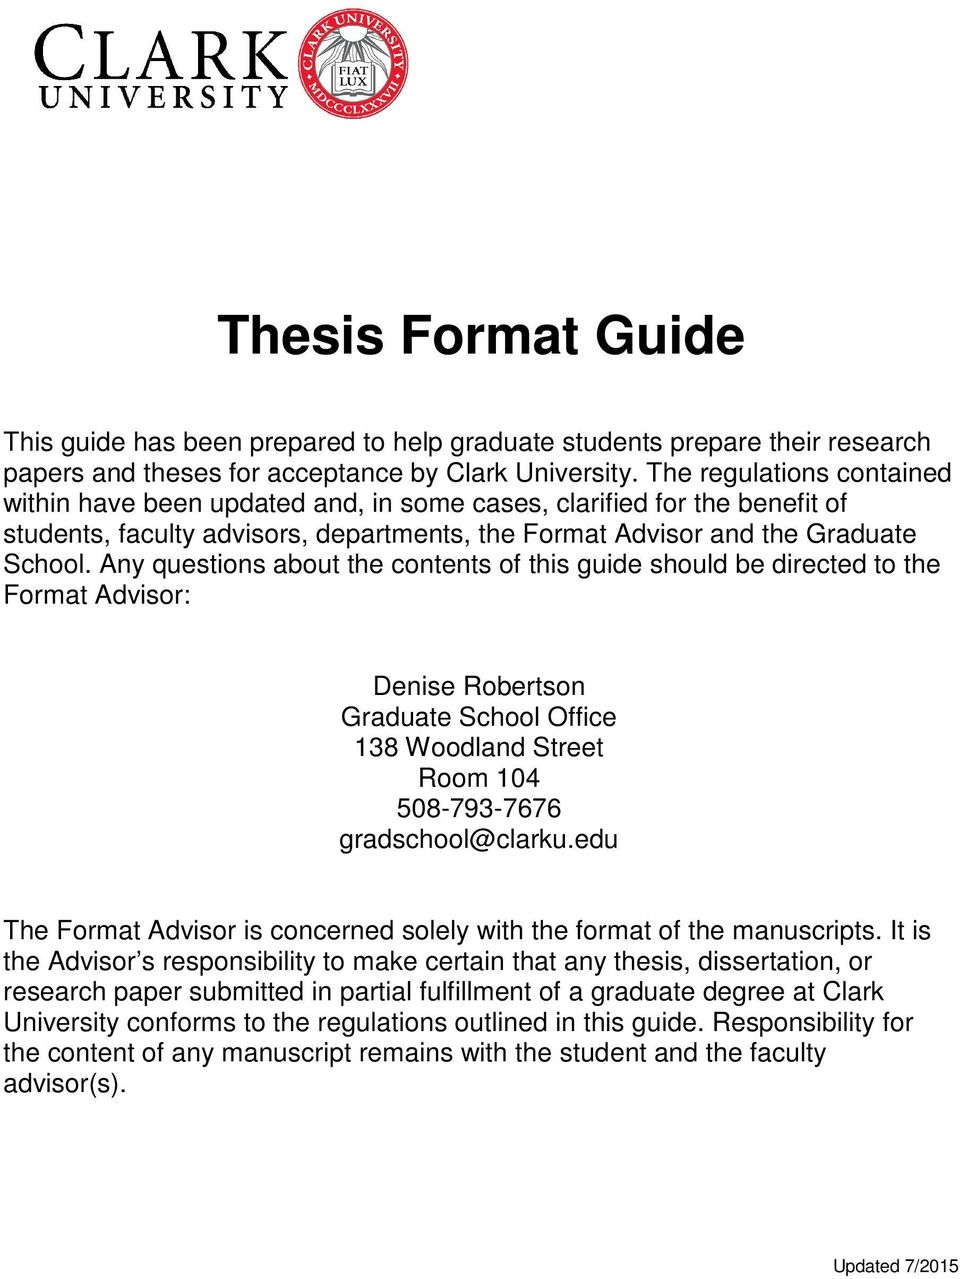 Any questions about the contents of this guide should be directed to the Format Advisor: Denise Robertson Graduate School Office 138 Woodland Street Room 104 508-793-7676 gradschool@clarku.